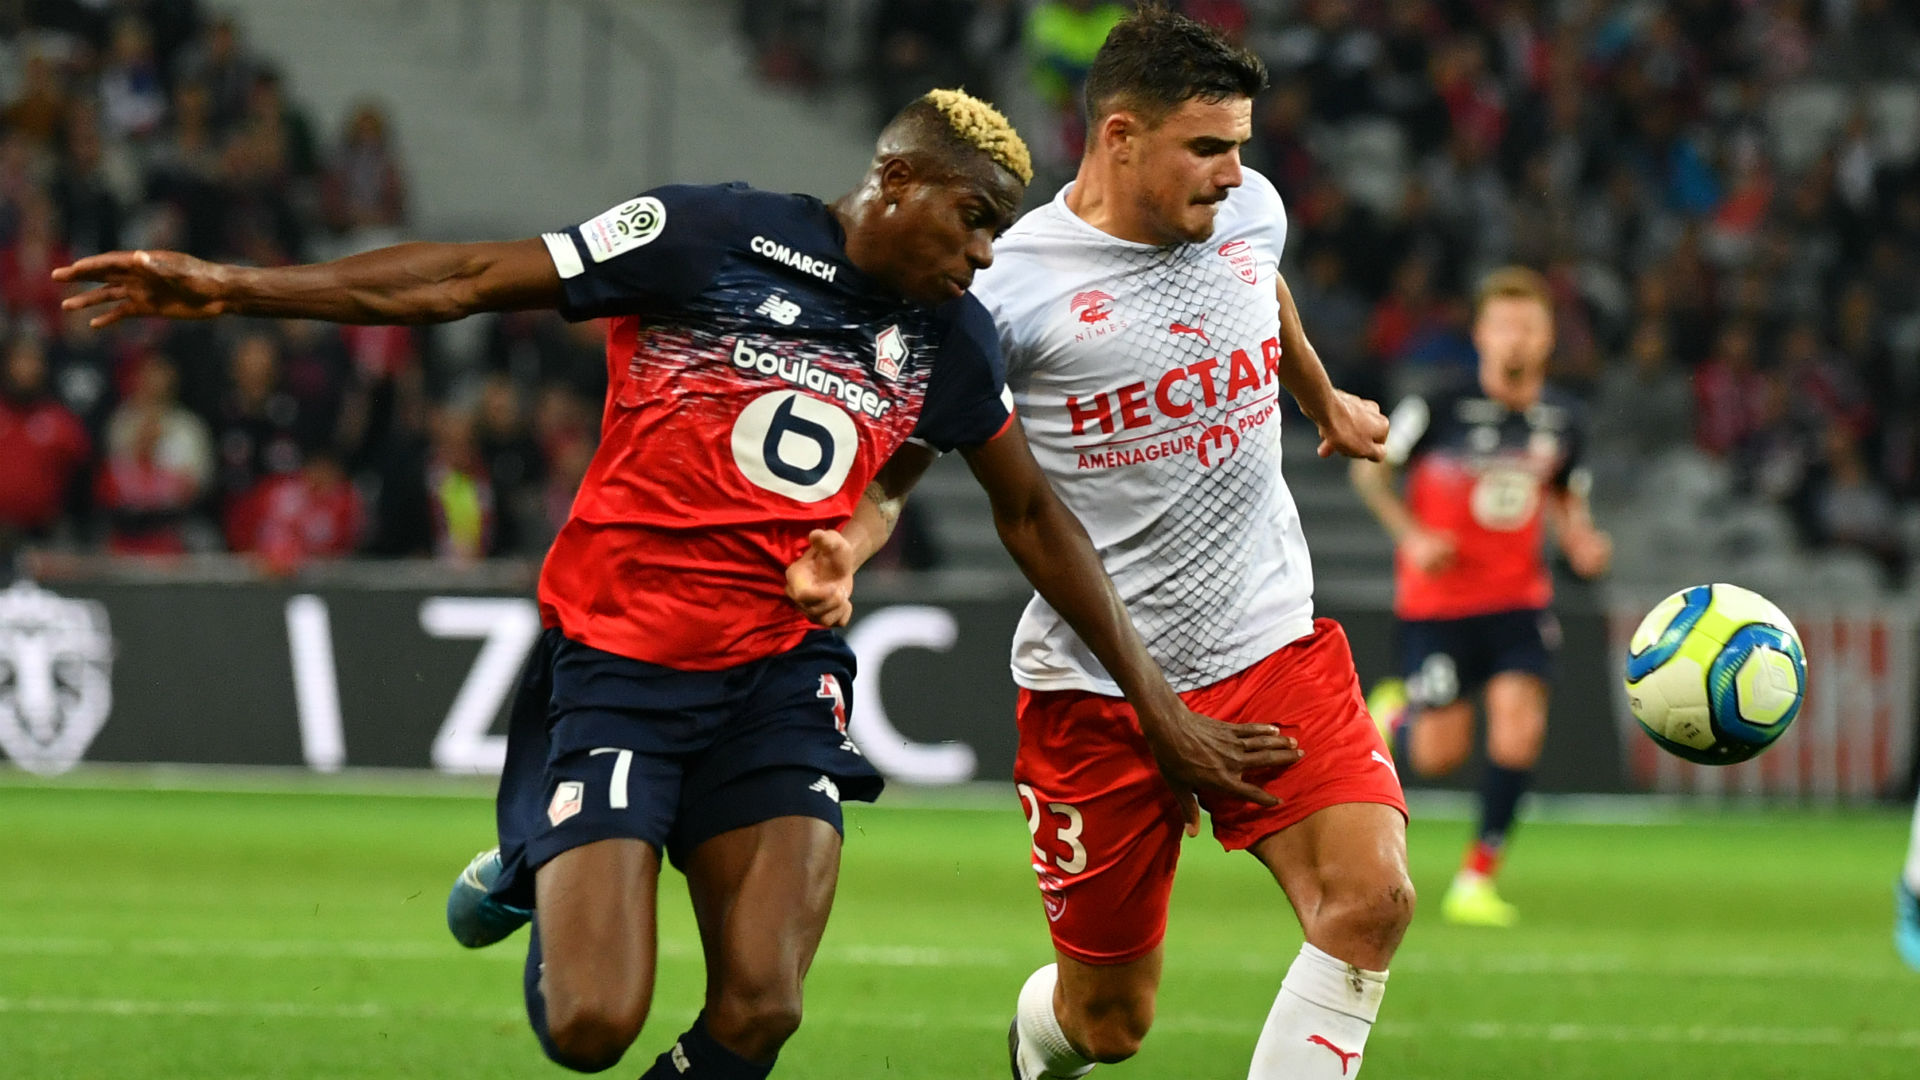 Osimhen and Slimani shortlisted for Ligue 1 Player of the Month award